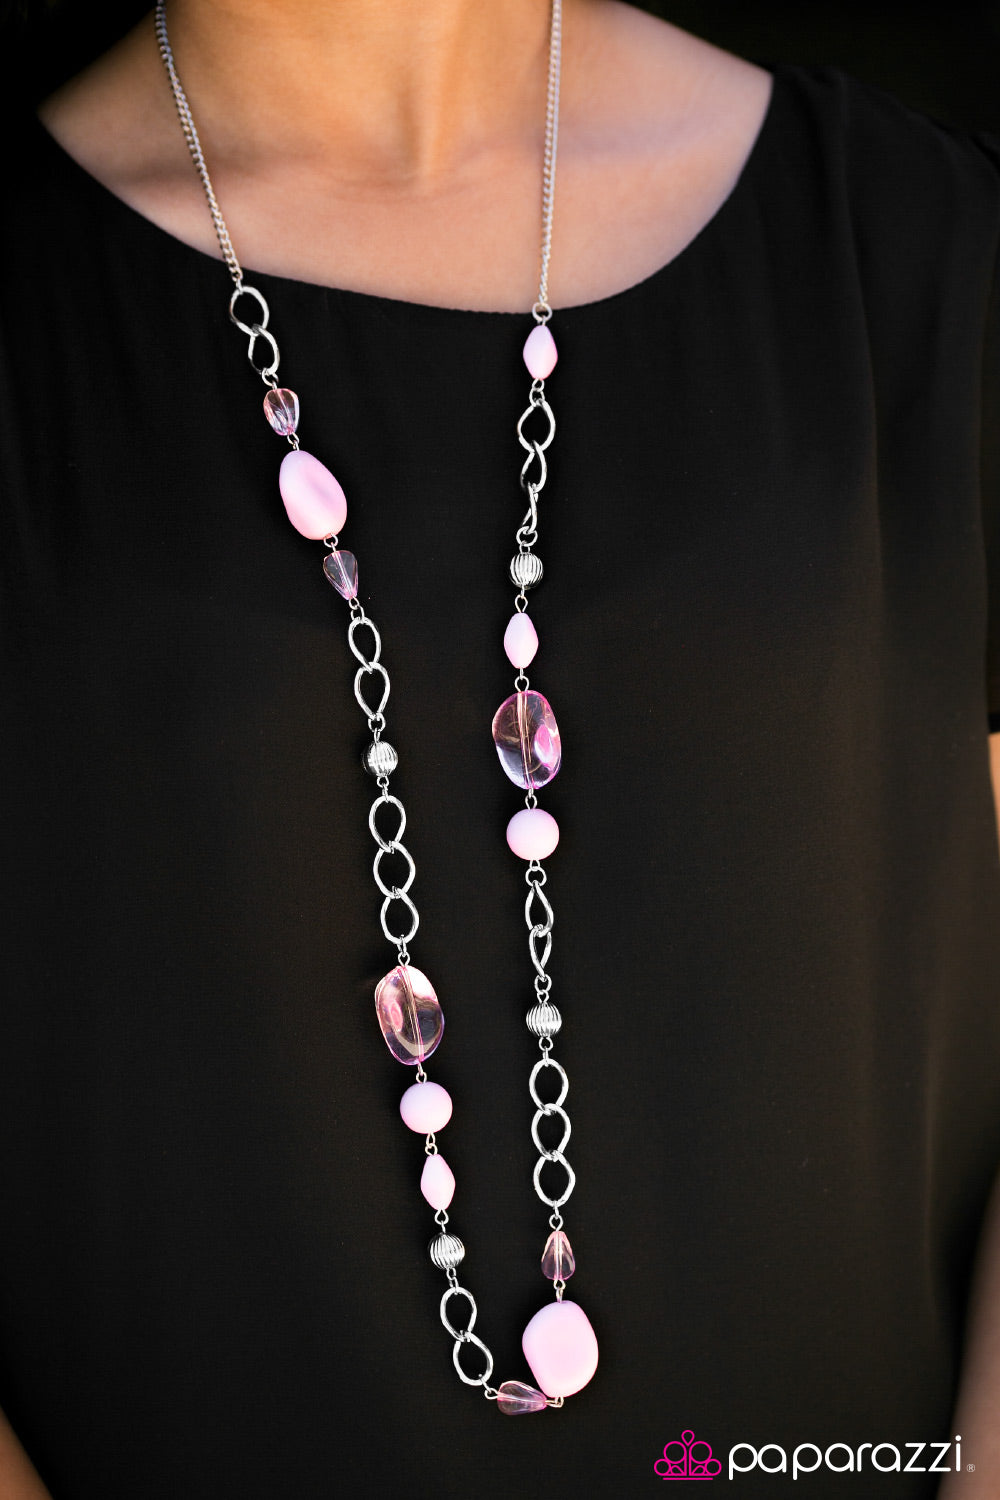 GLASSical MUSIC - PINK NECKLACE (8022)